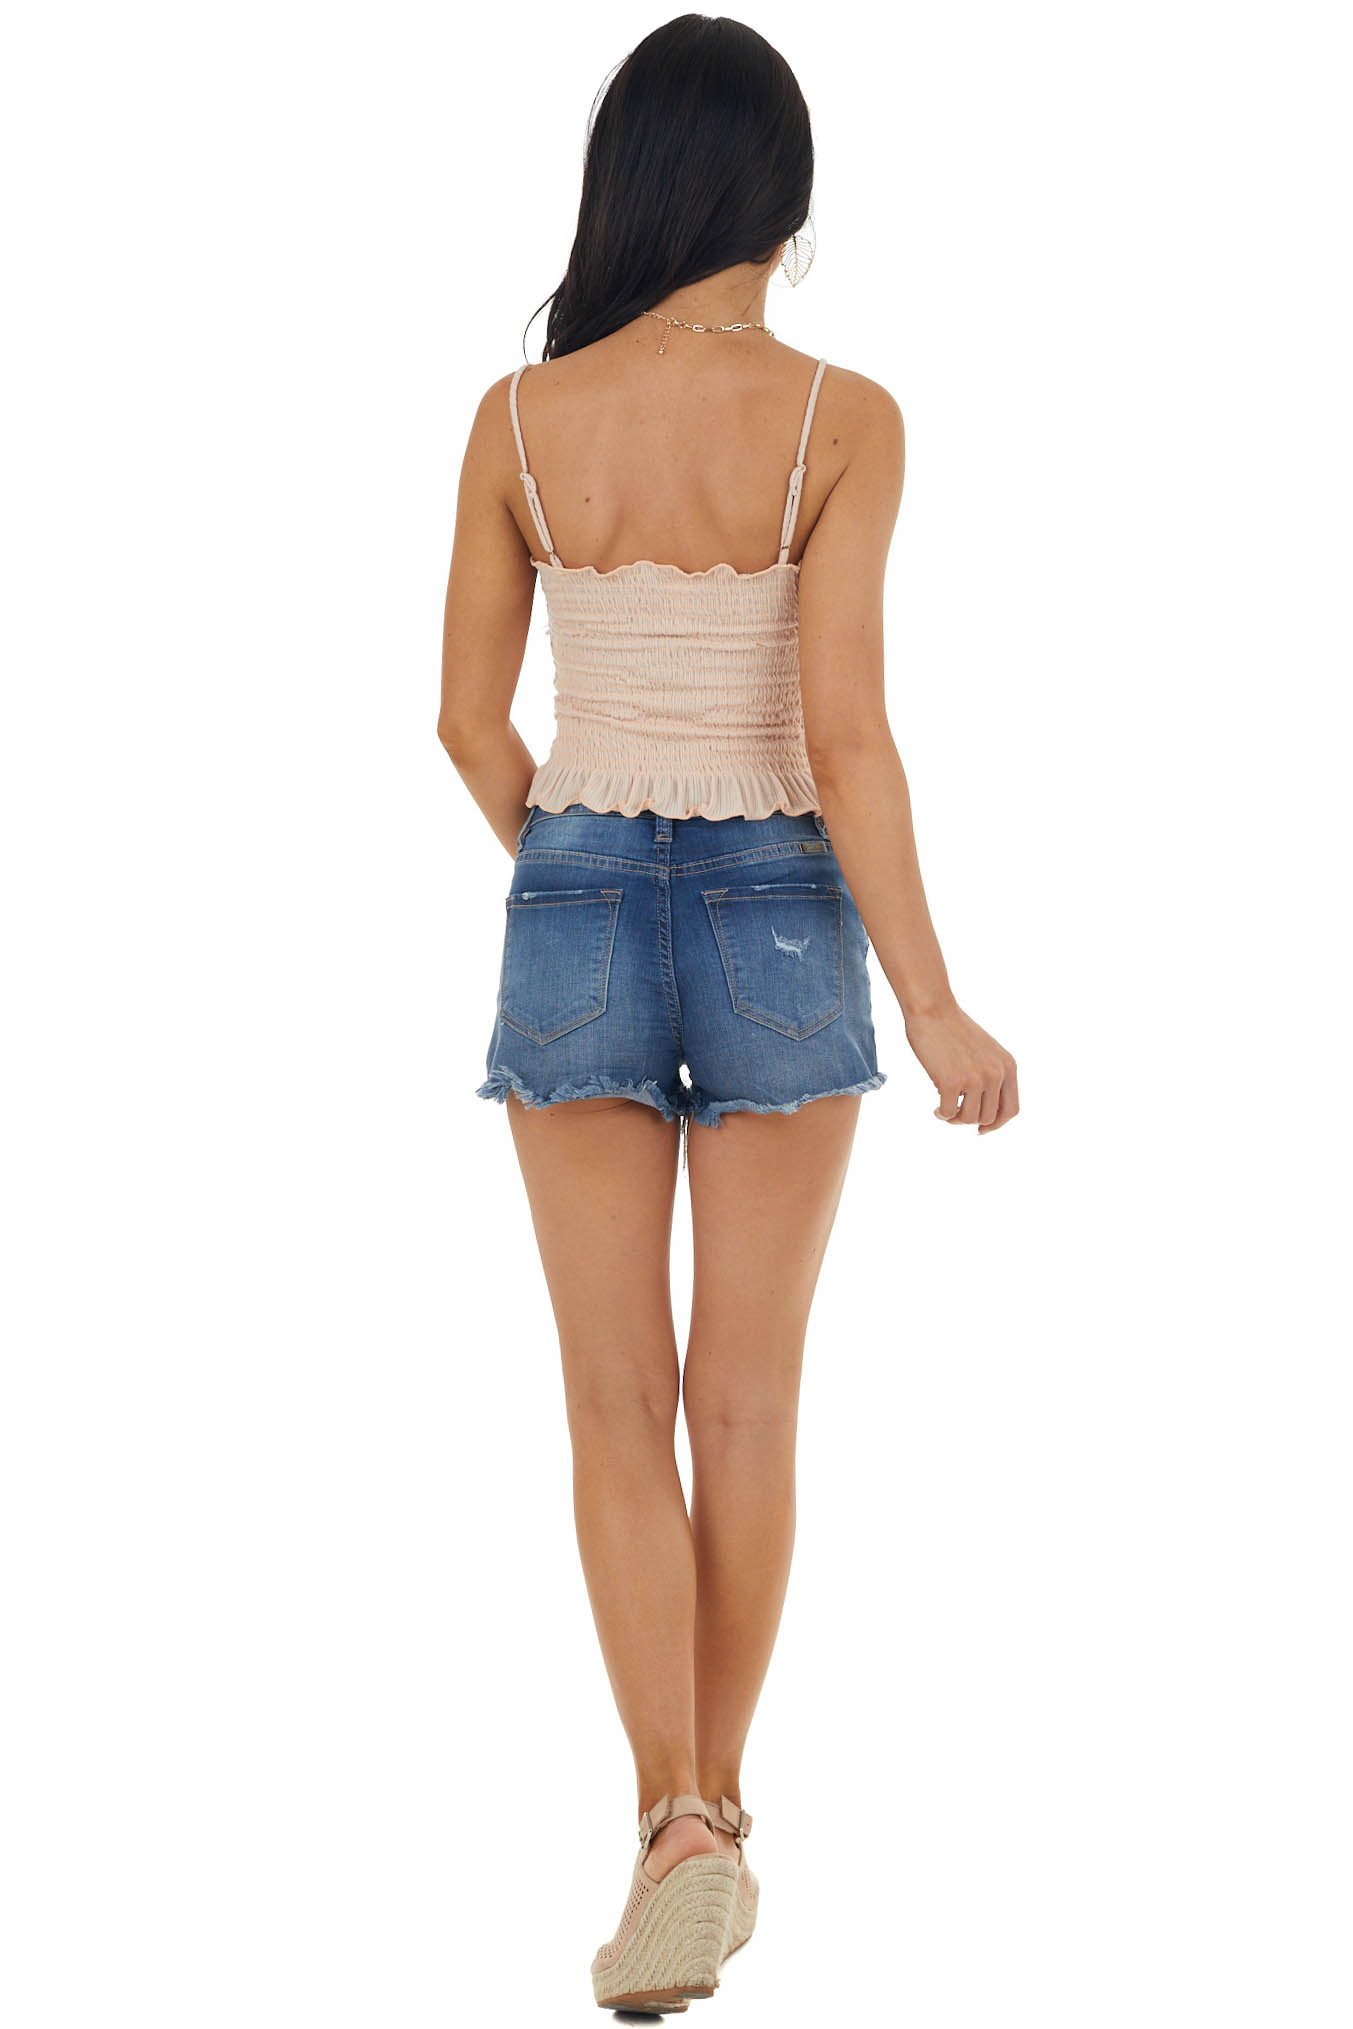 Peach Smocked Crop Tank Top with Ruffle Detail